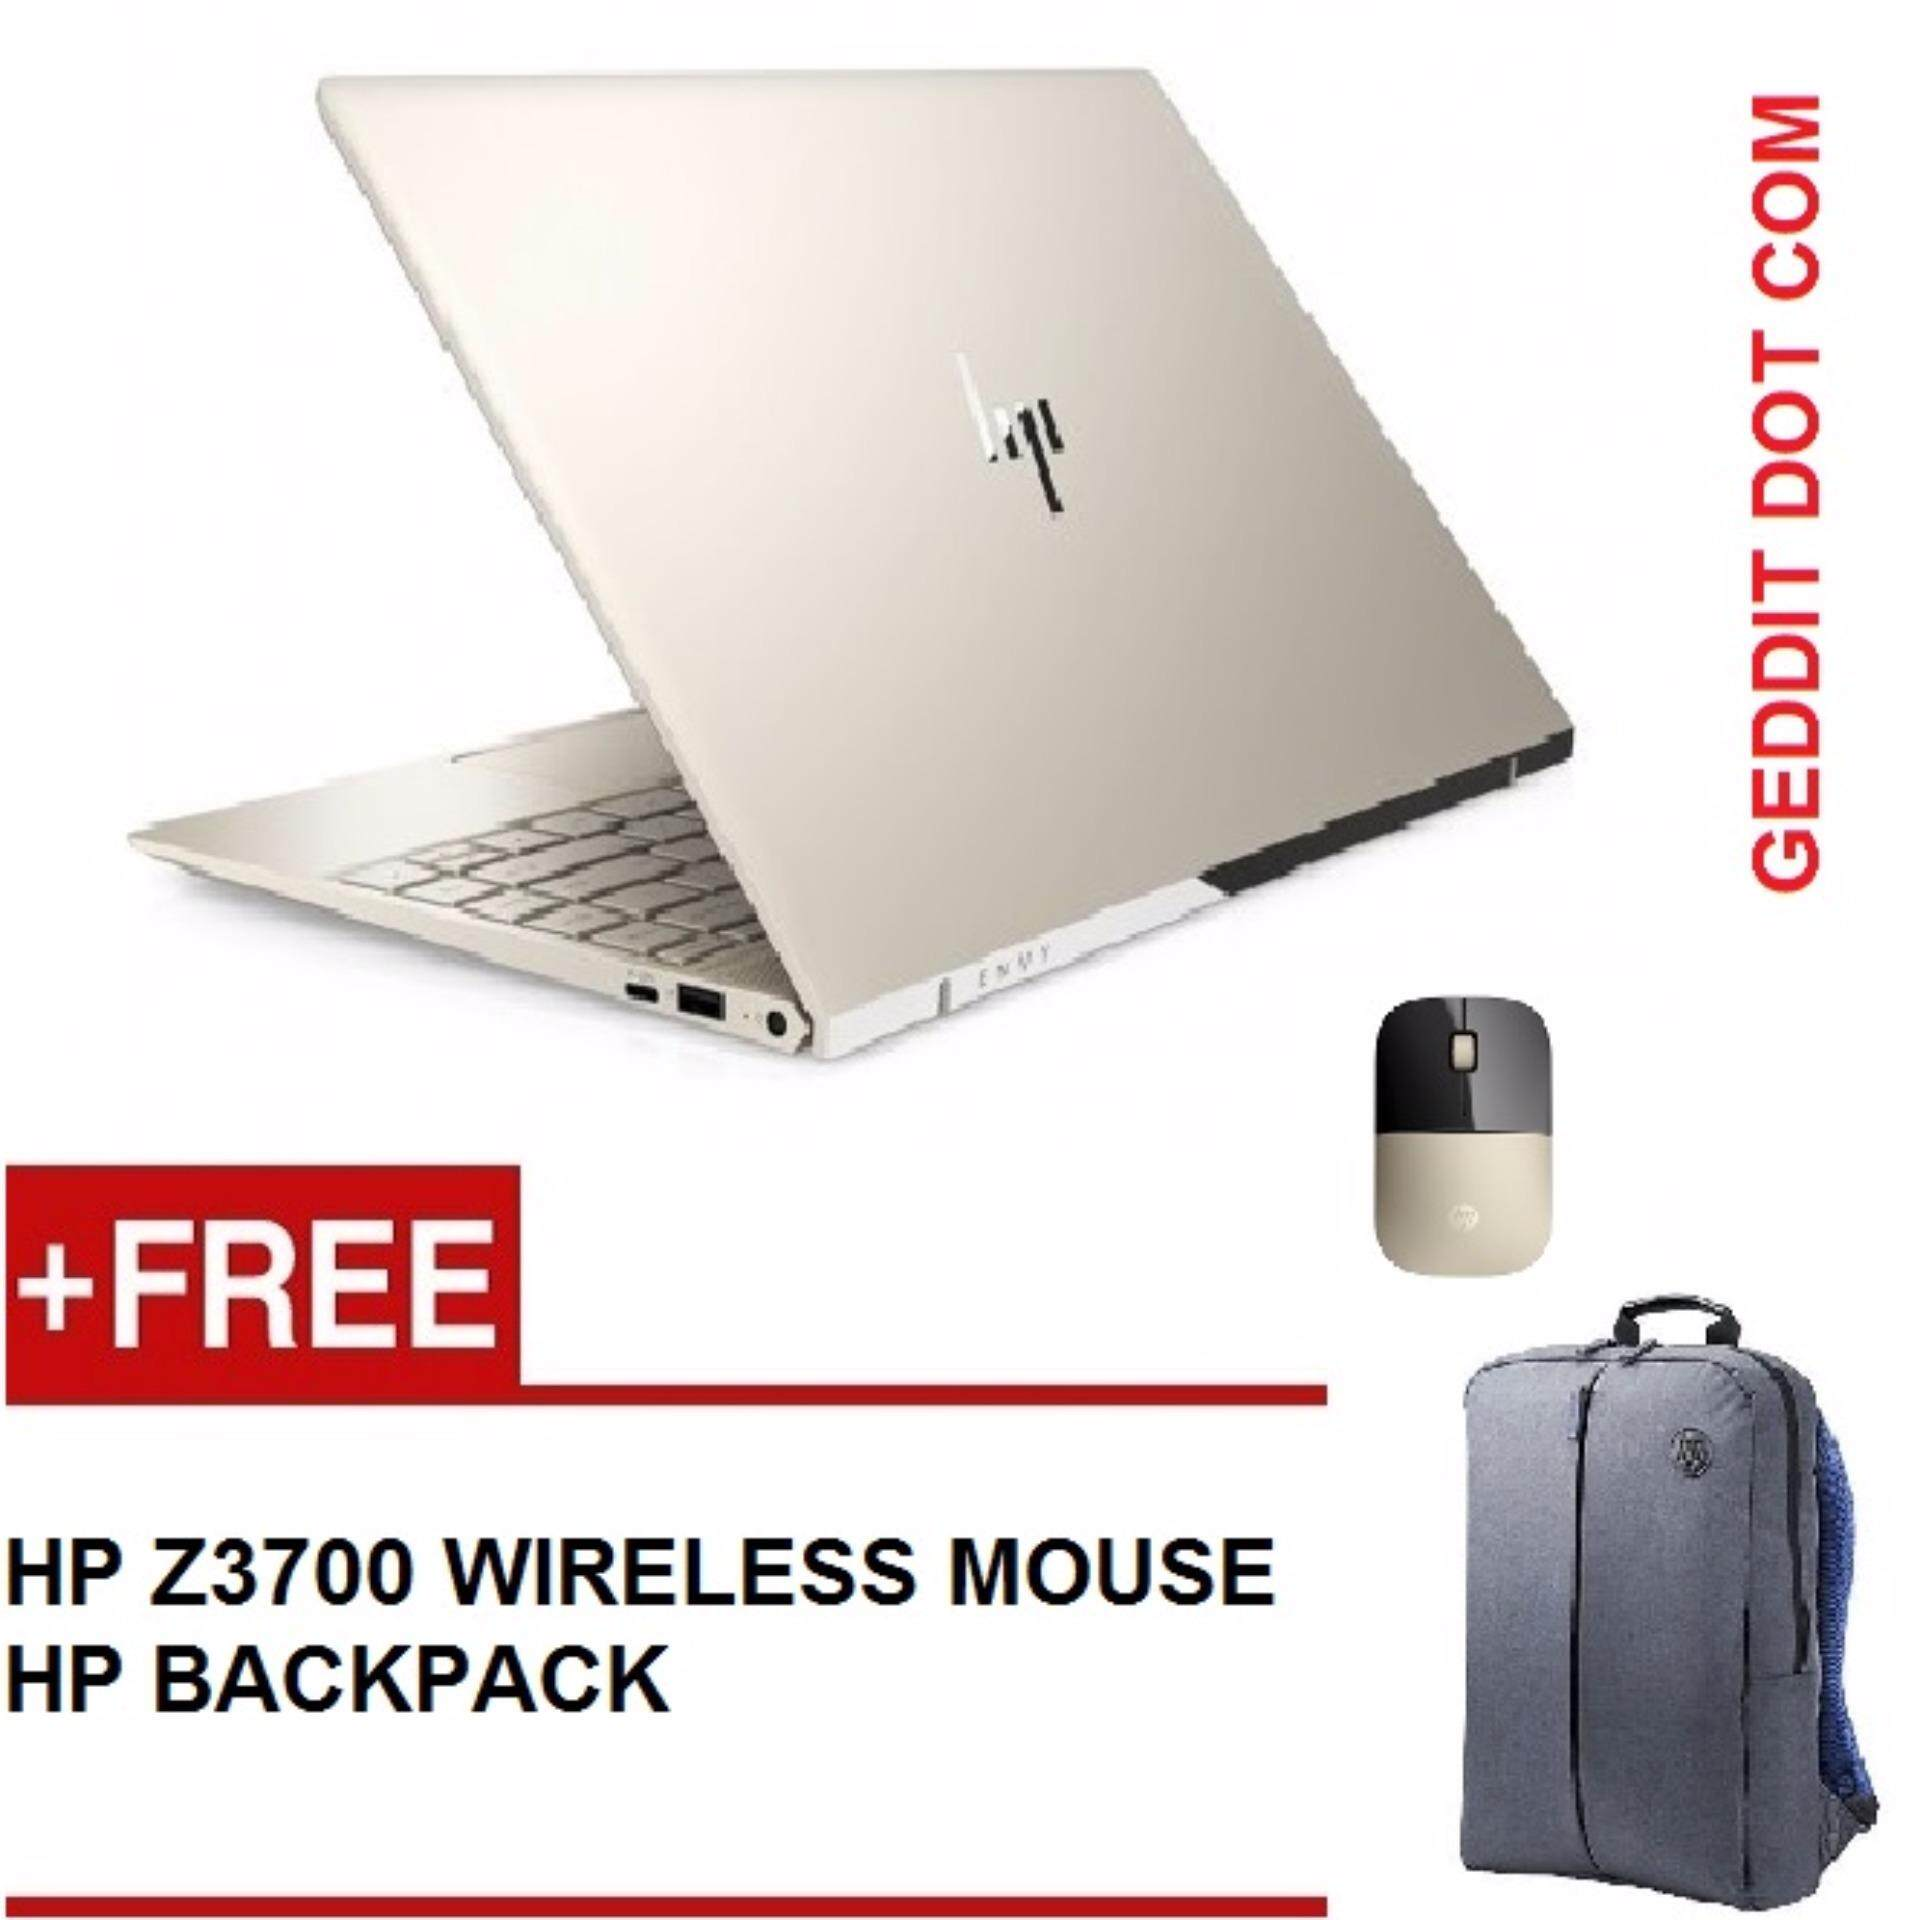 HP ENVY 13-AD102TU / 13-AD103TU NOTEBOOK (i5-8250U,8GB,256GB SSD,NO DVD,WIN10,13.3 FULLHD,2YEAR ONSITE) FREE BACKPACK +HP Z3700 WIRELESS MOUSE Malaysia